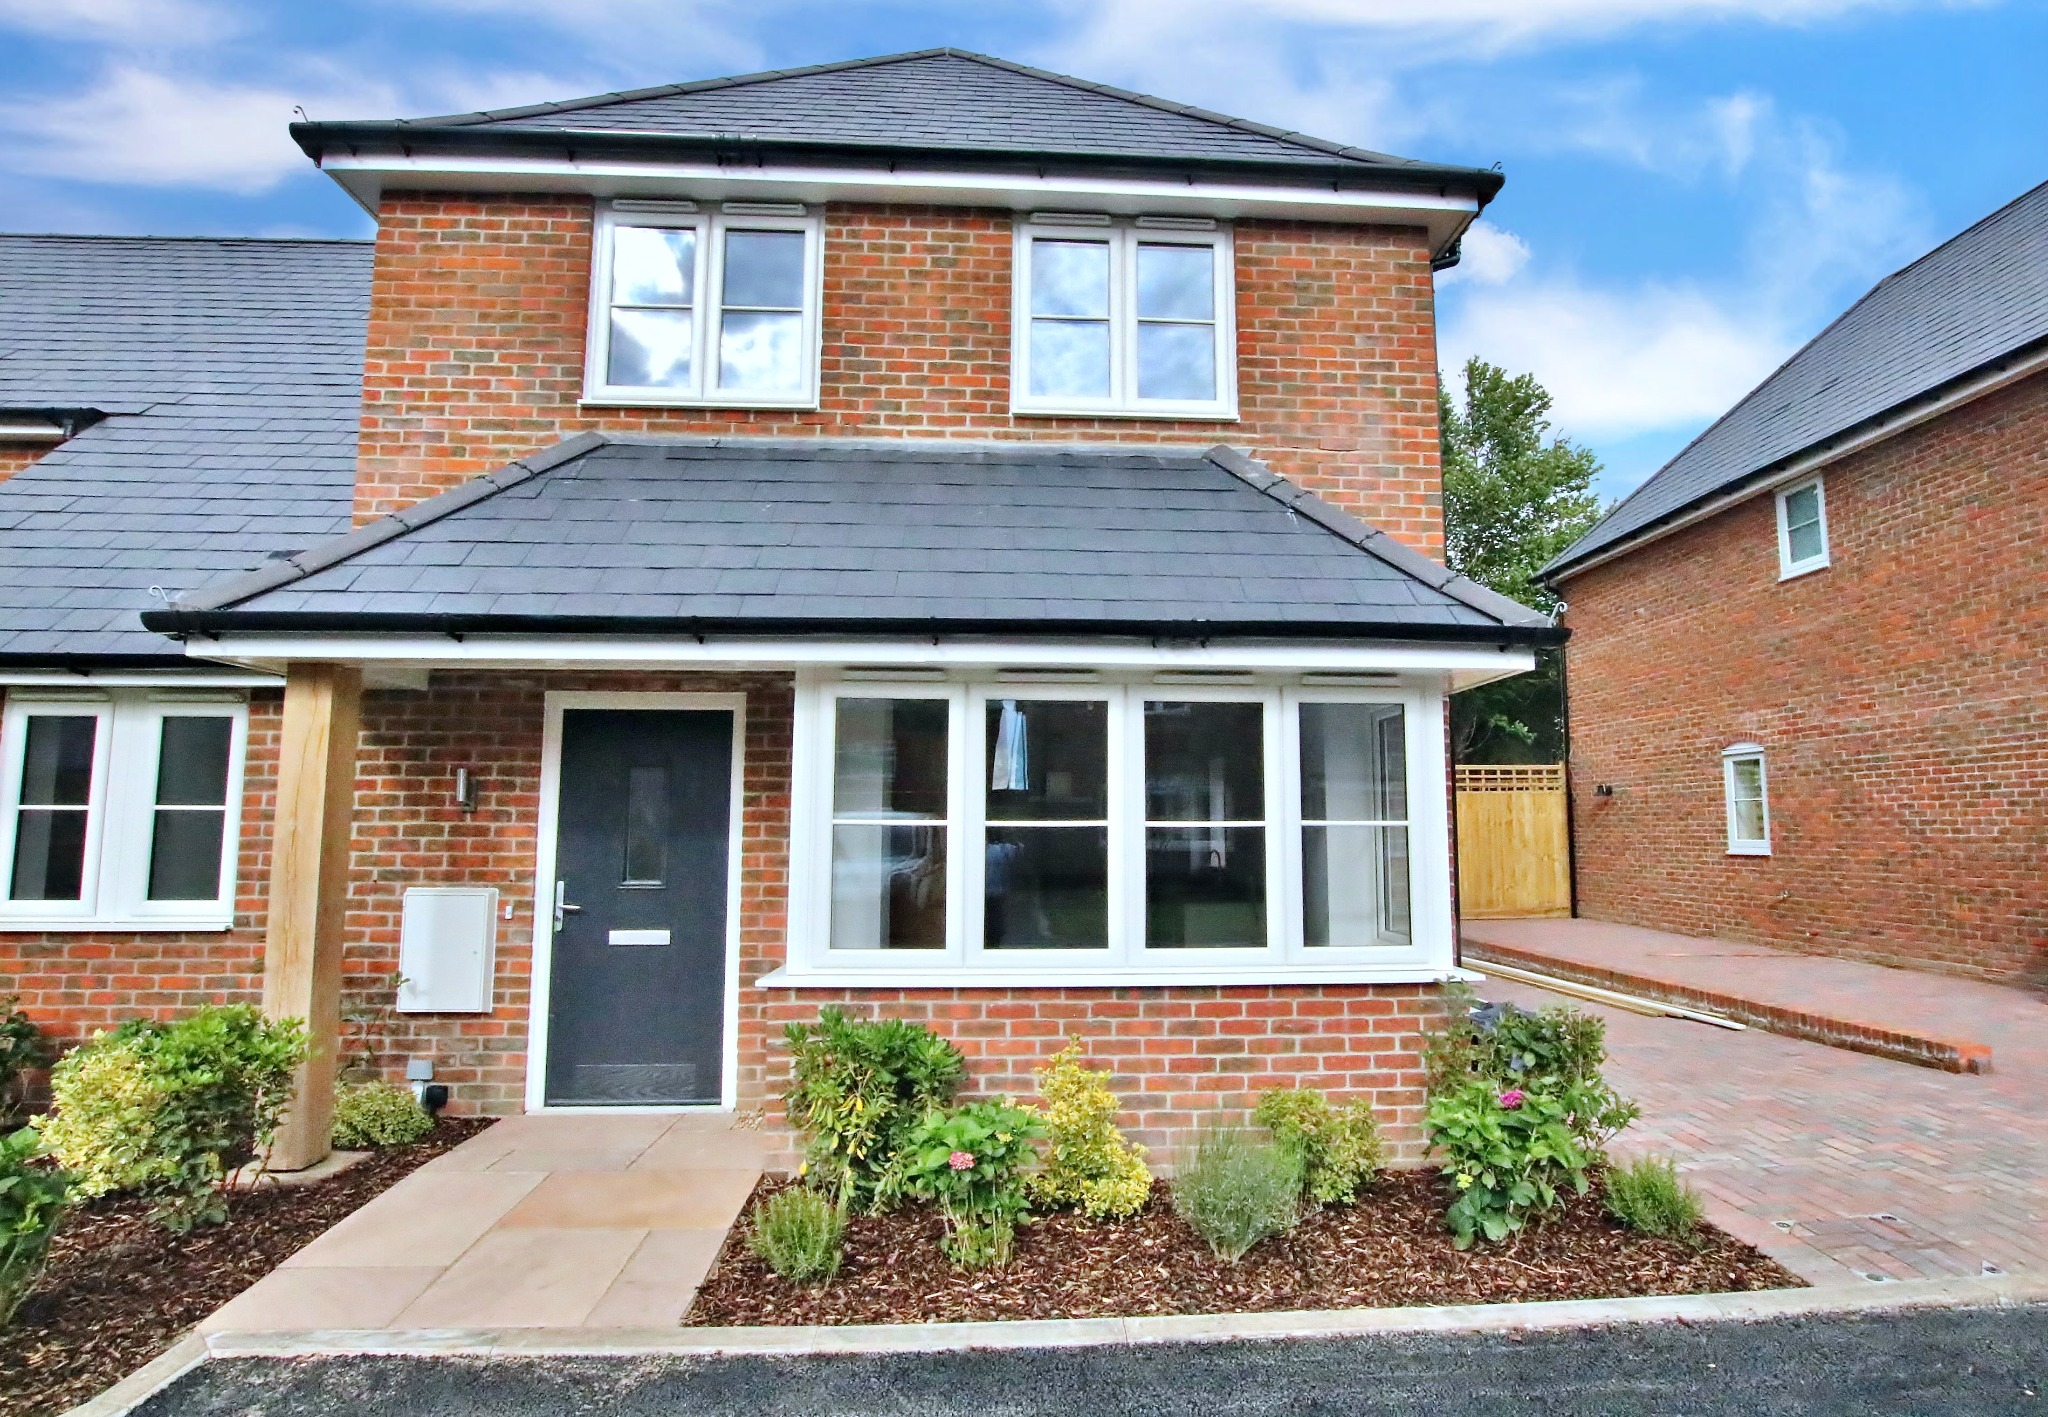 Brand New Three Bed Semi Detached With Help To Buy And Ready To Move In!